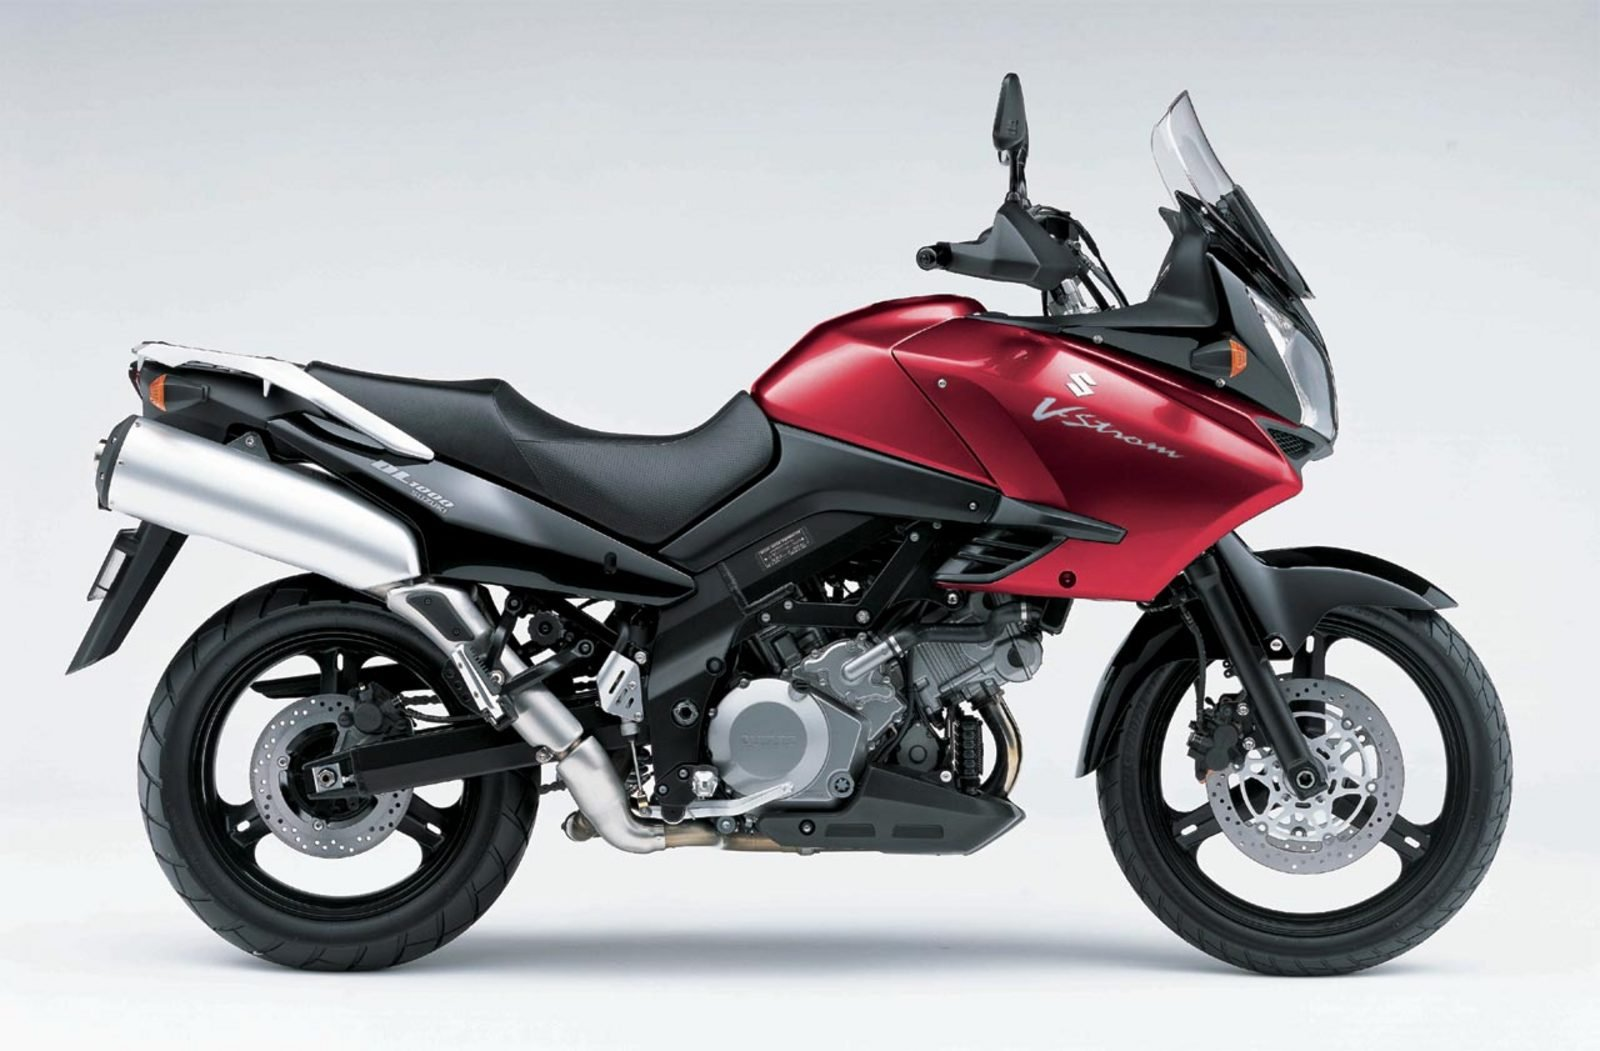 2006 suzuki v strom 1000 review top speed. Black Bedroom Furniture Sets. Home Design Ideas